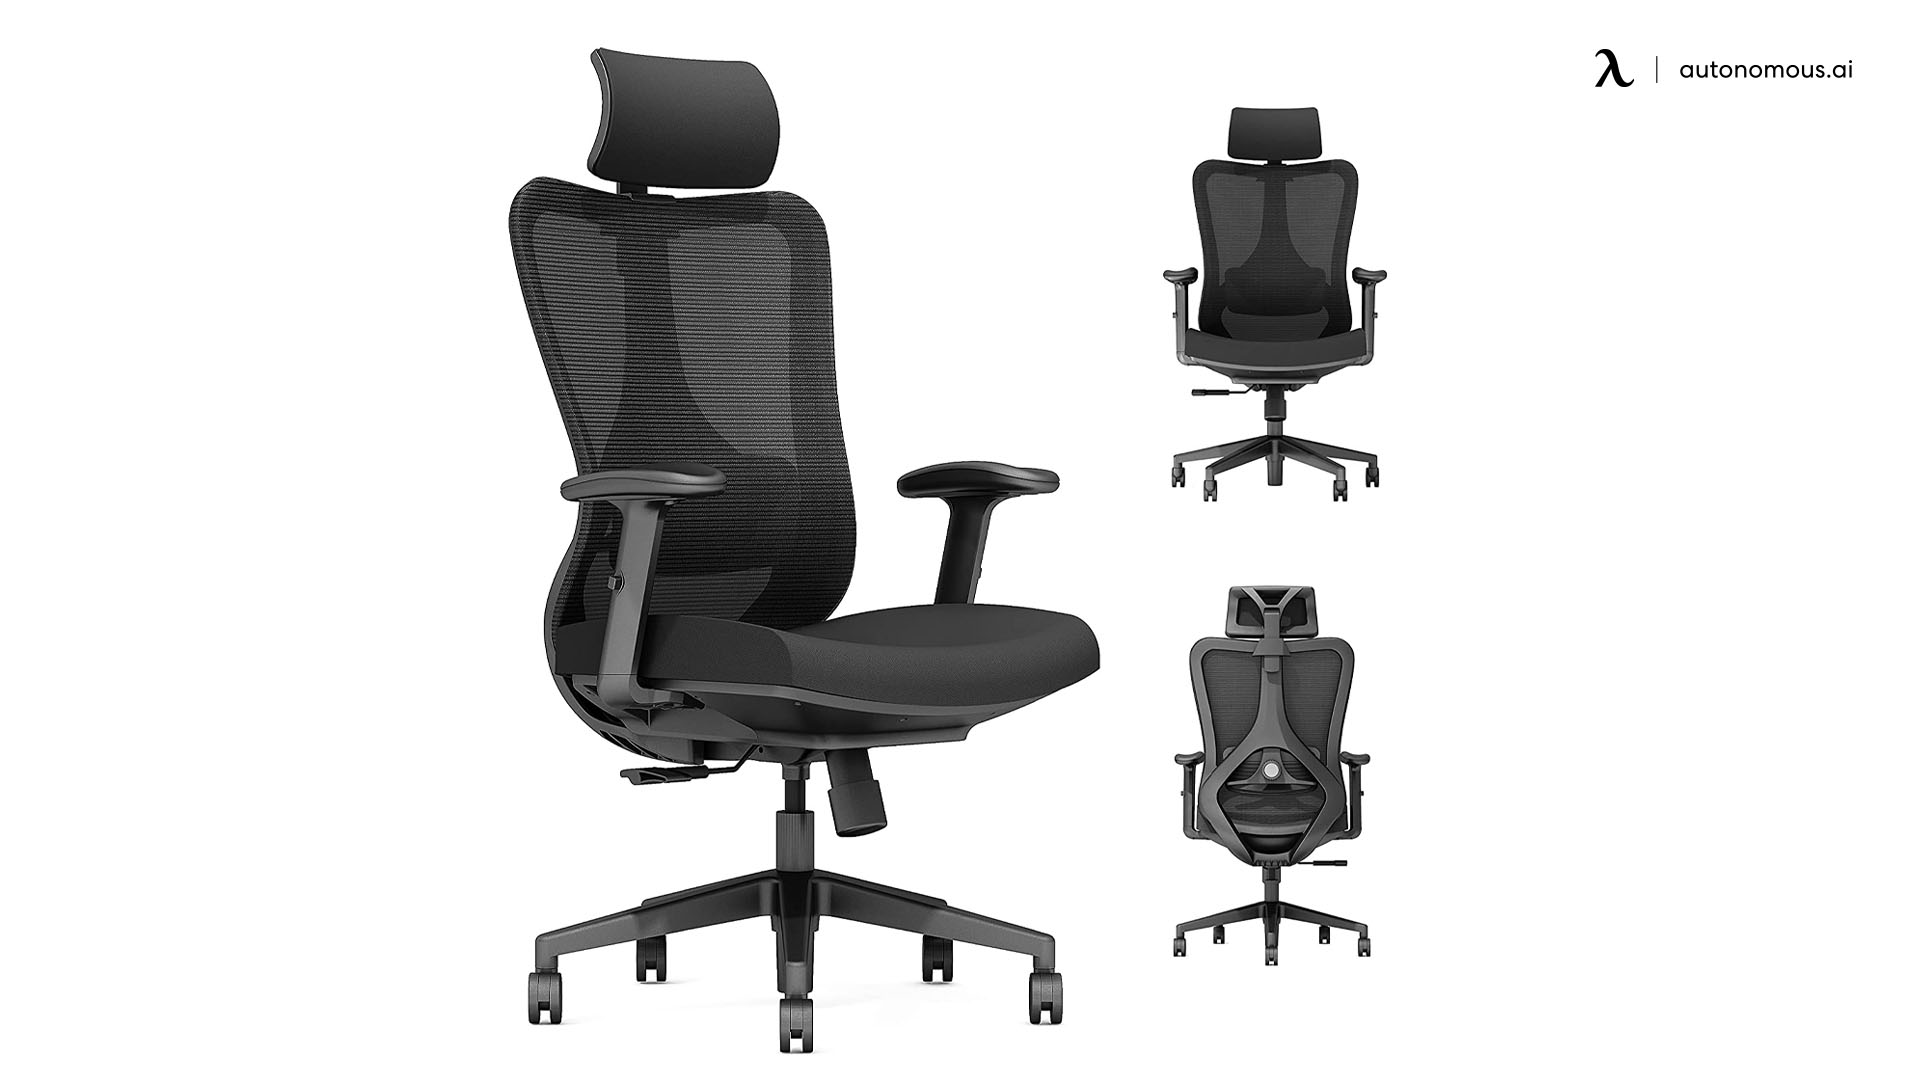 Ergonomic Office Chair for Gaming by Defy Desk